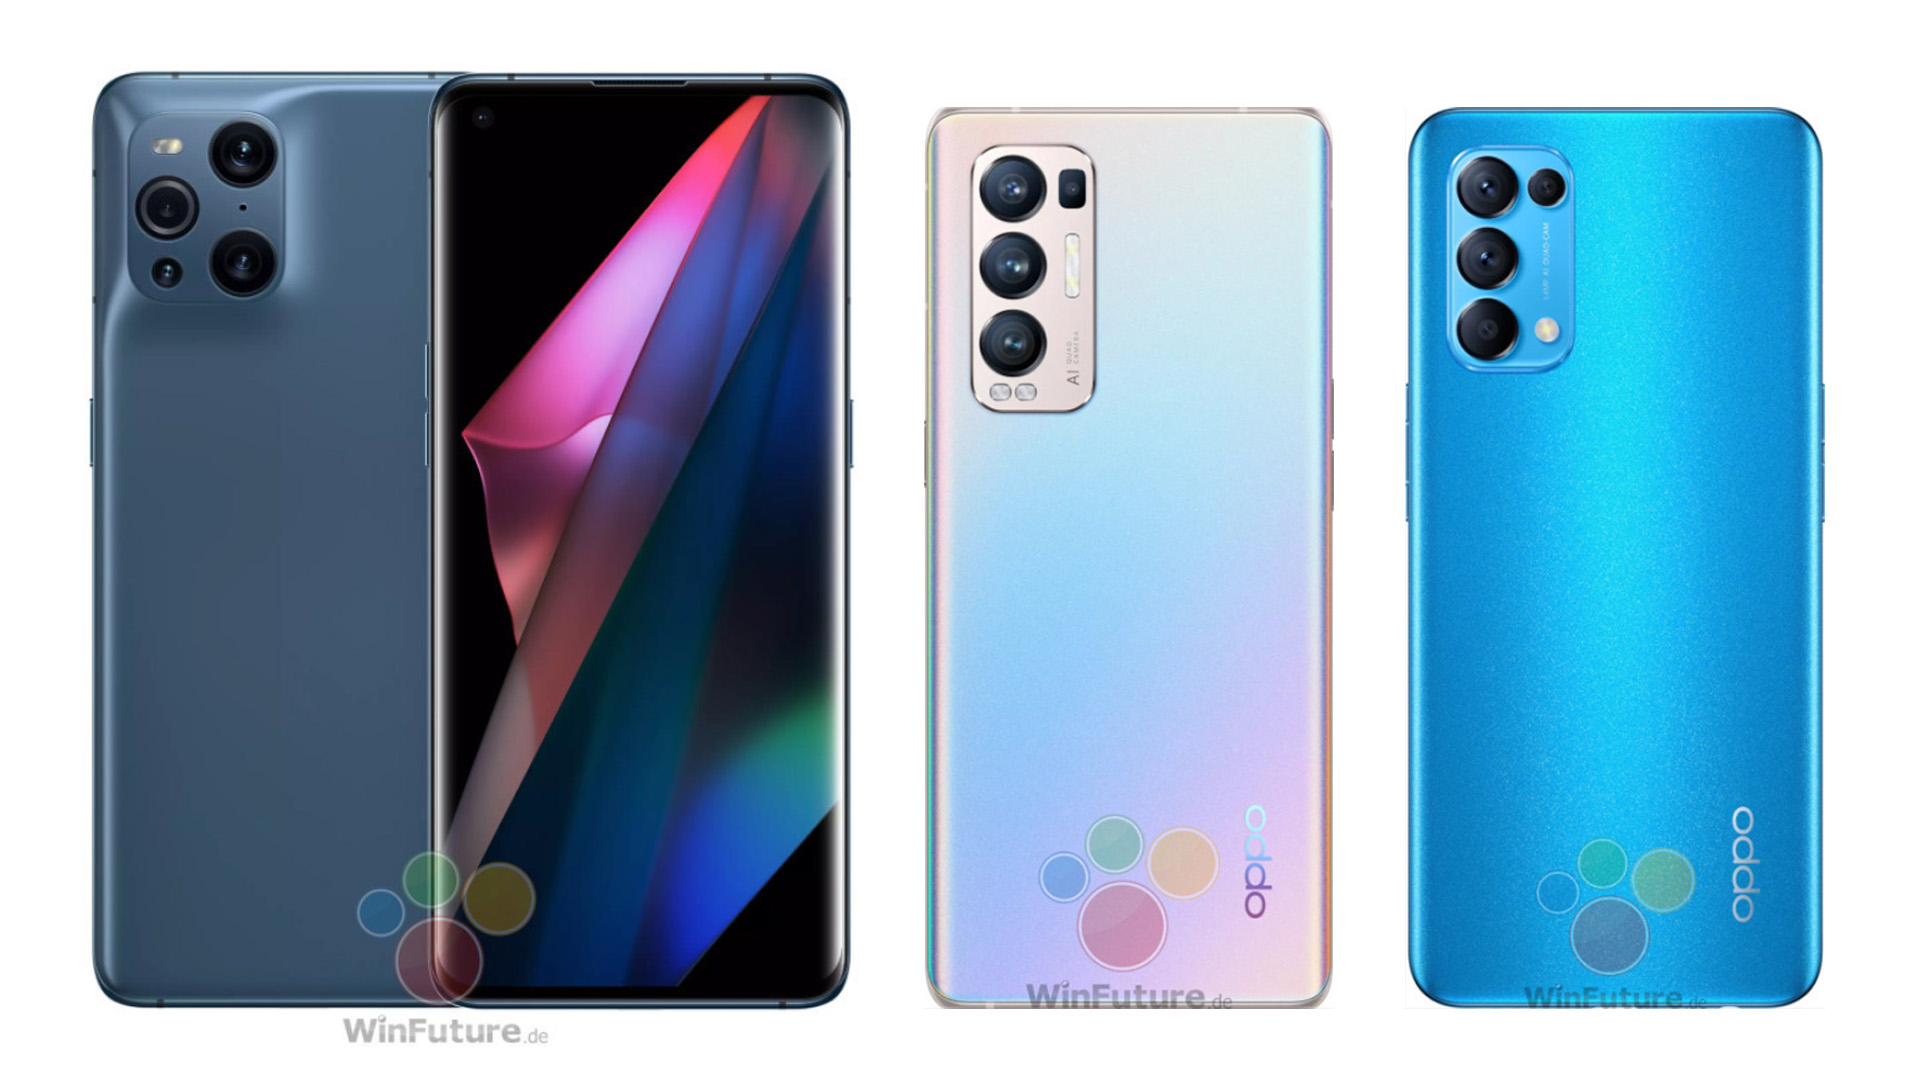 Oppo Find X3 Pro, X3 Neo, and X3 Lite photos and full specs leak ahead of formal debut - Android Police